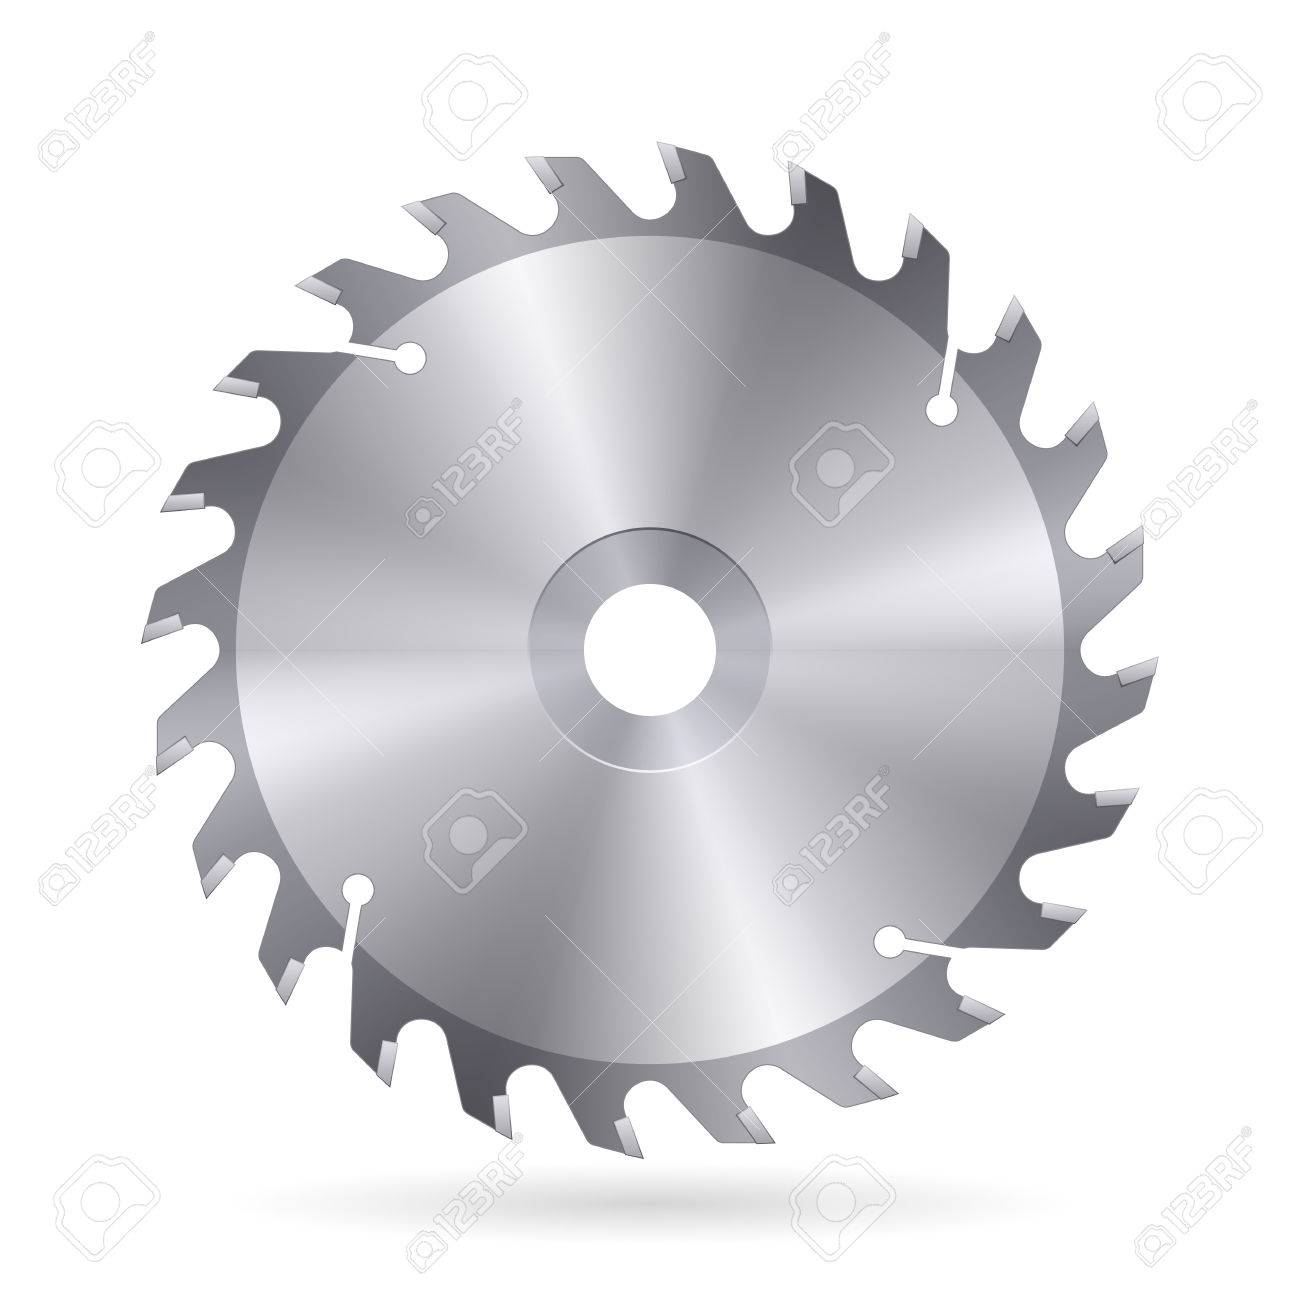 Metal blade of circular saw on white background royalty free metal blade of circular saw on white background stock vector 27438962 keyboard keysfo Image collections